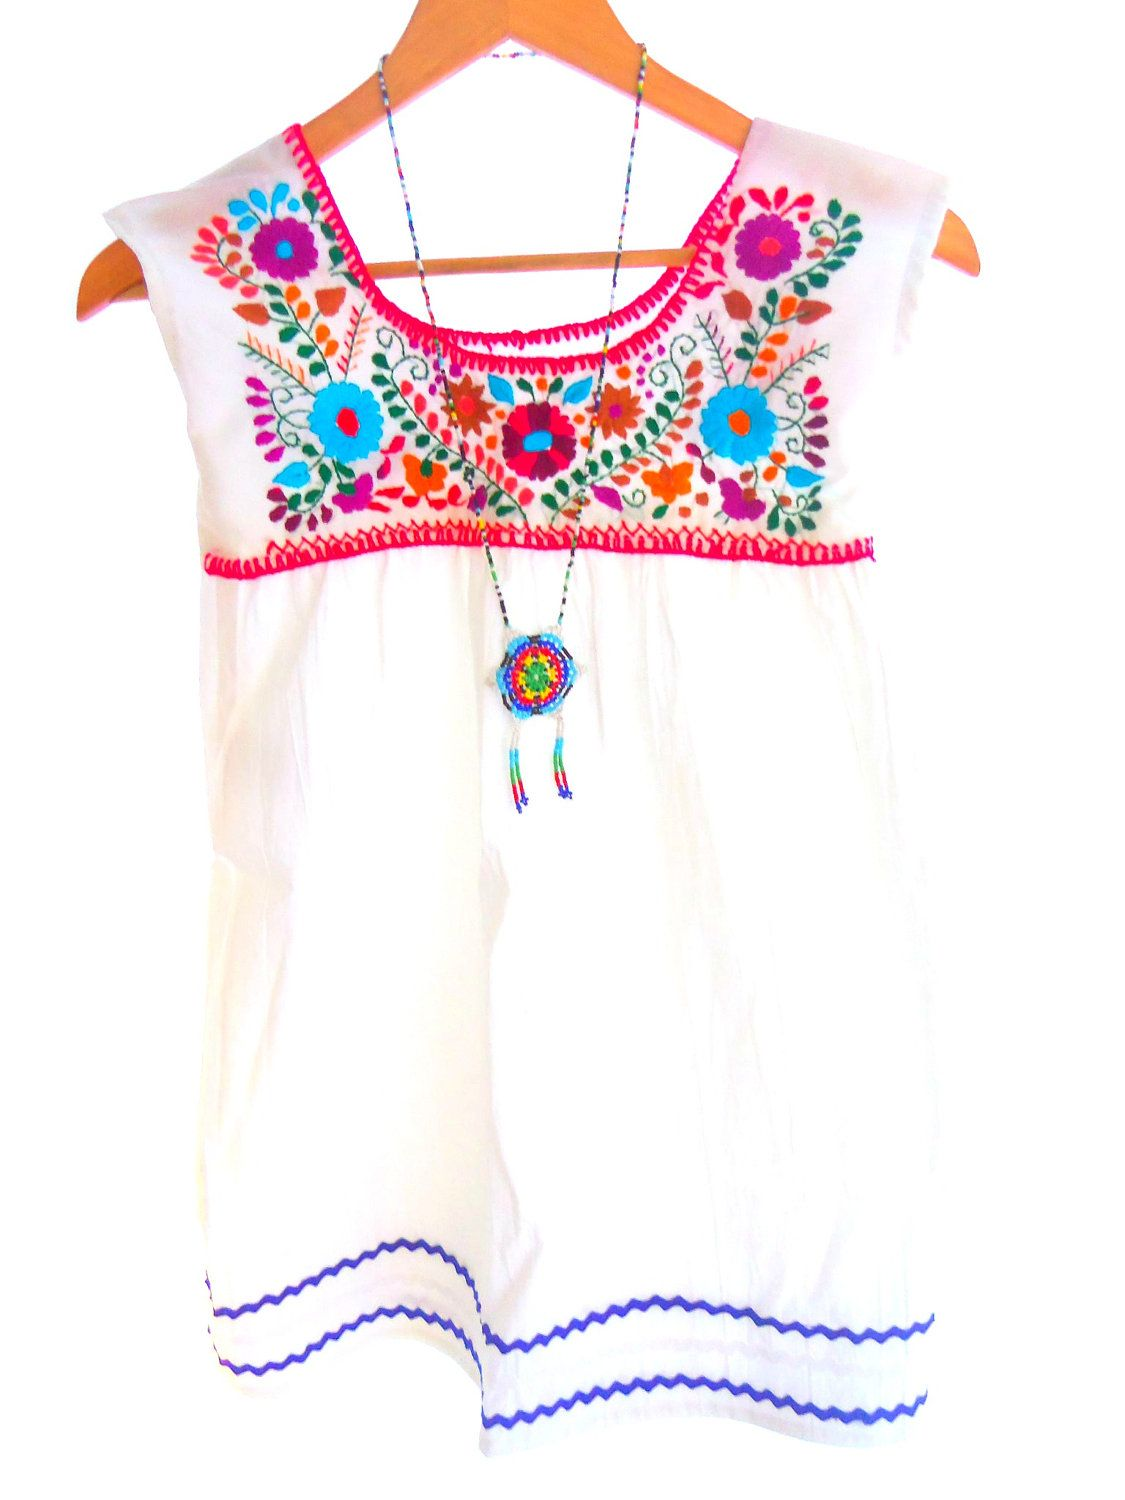 Snow white Handmade Embroidered Cotton Mexican Baby Tunic Dress. $39.00,  via Etsy.